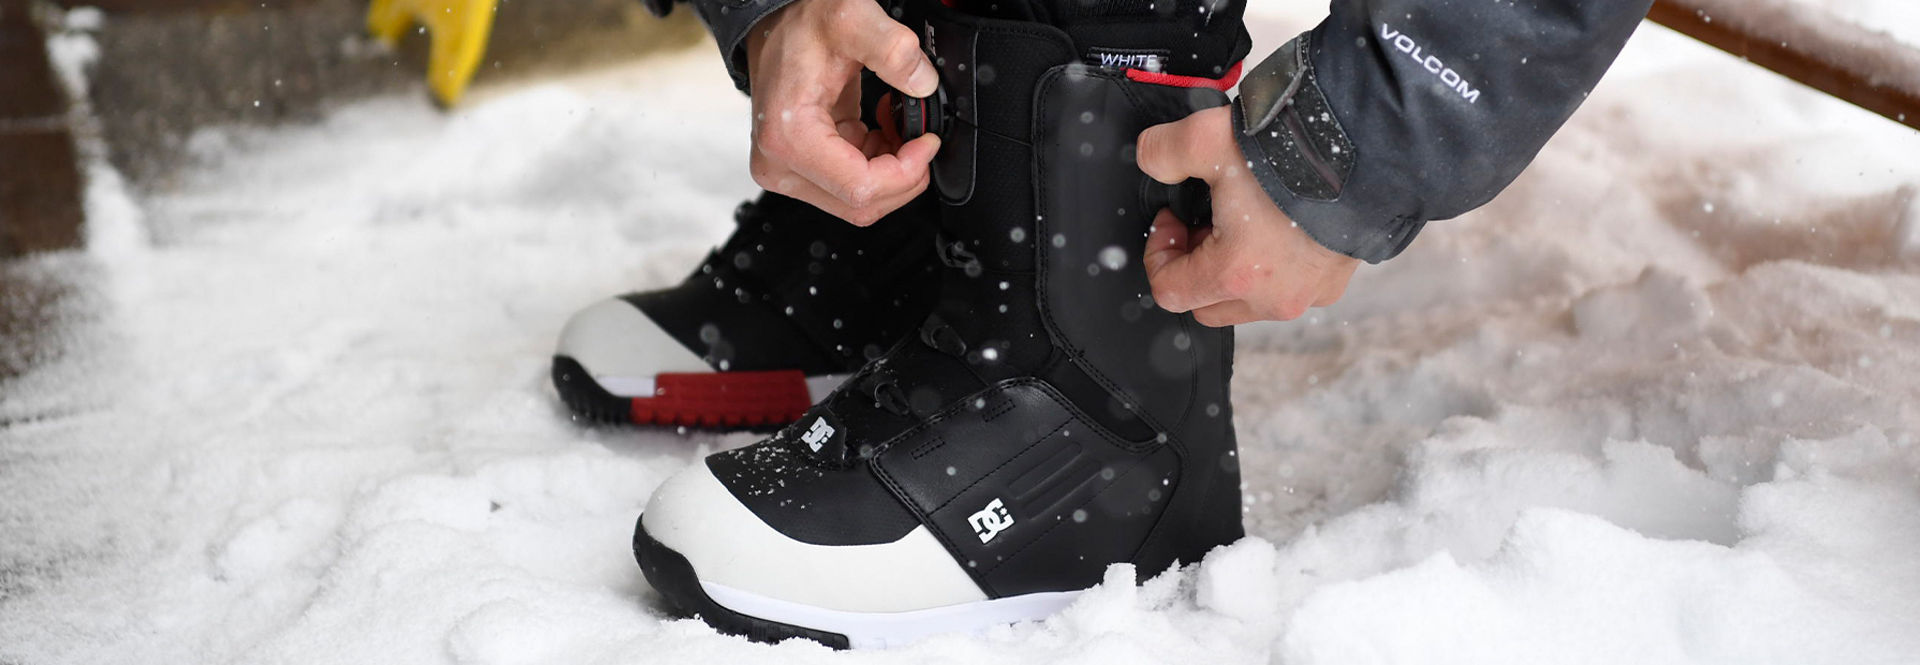 The DC Control snowboard boot with the dual zone BOA®system